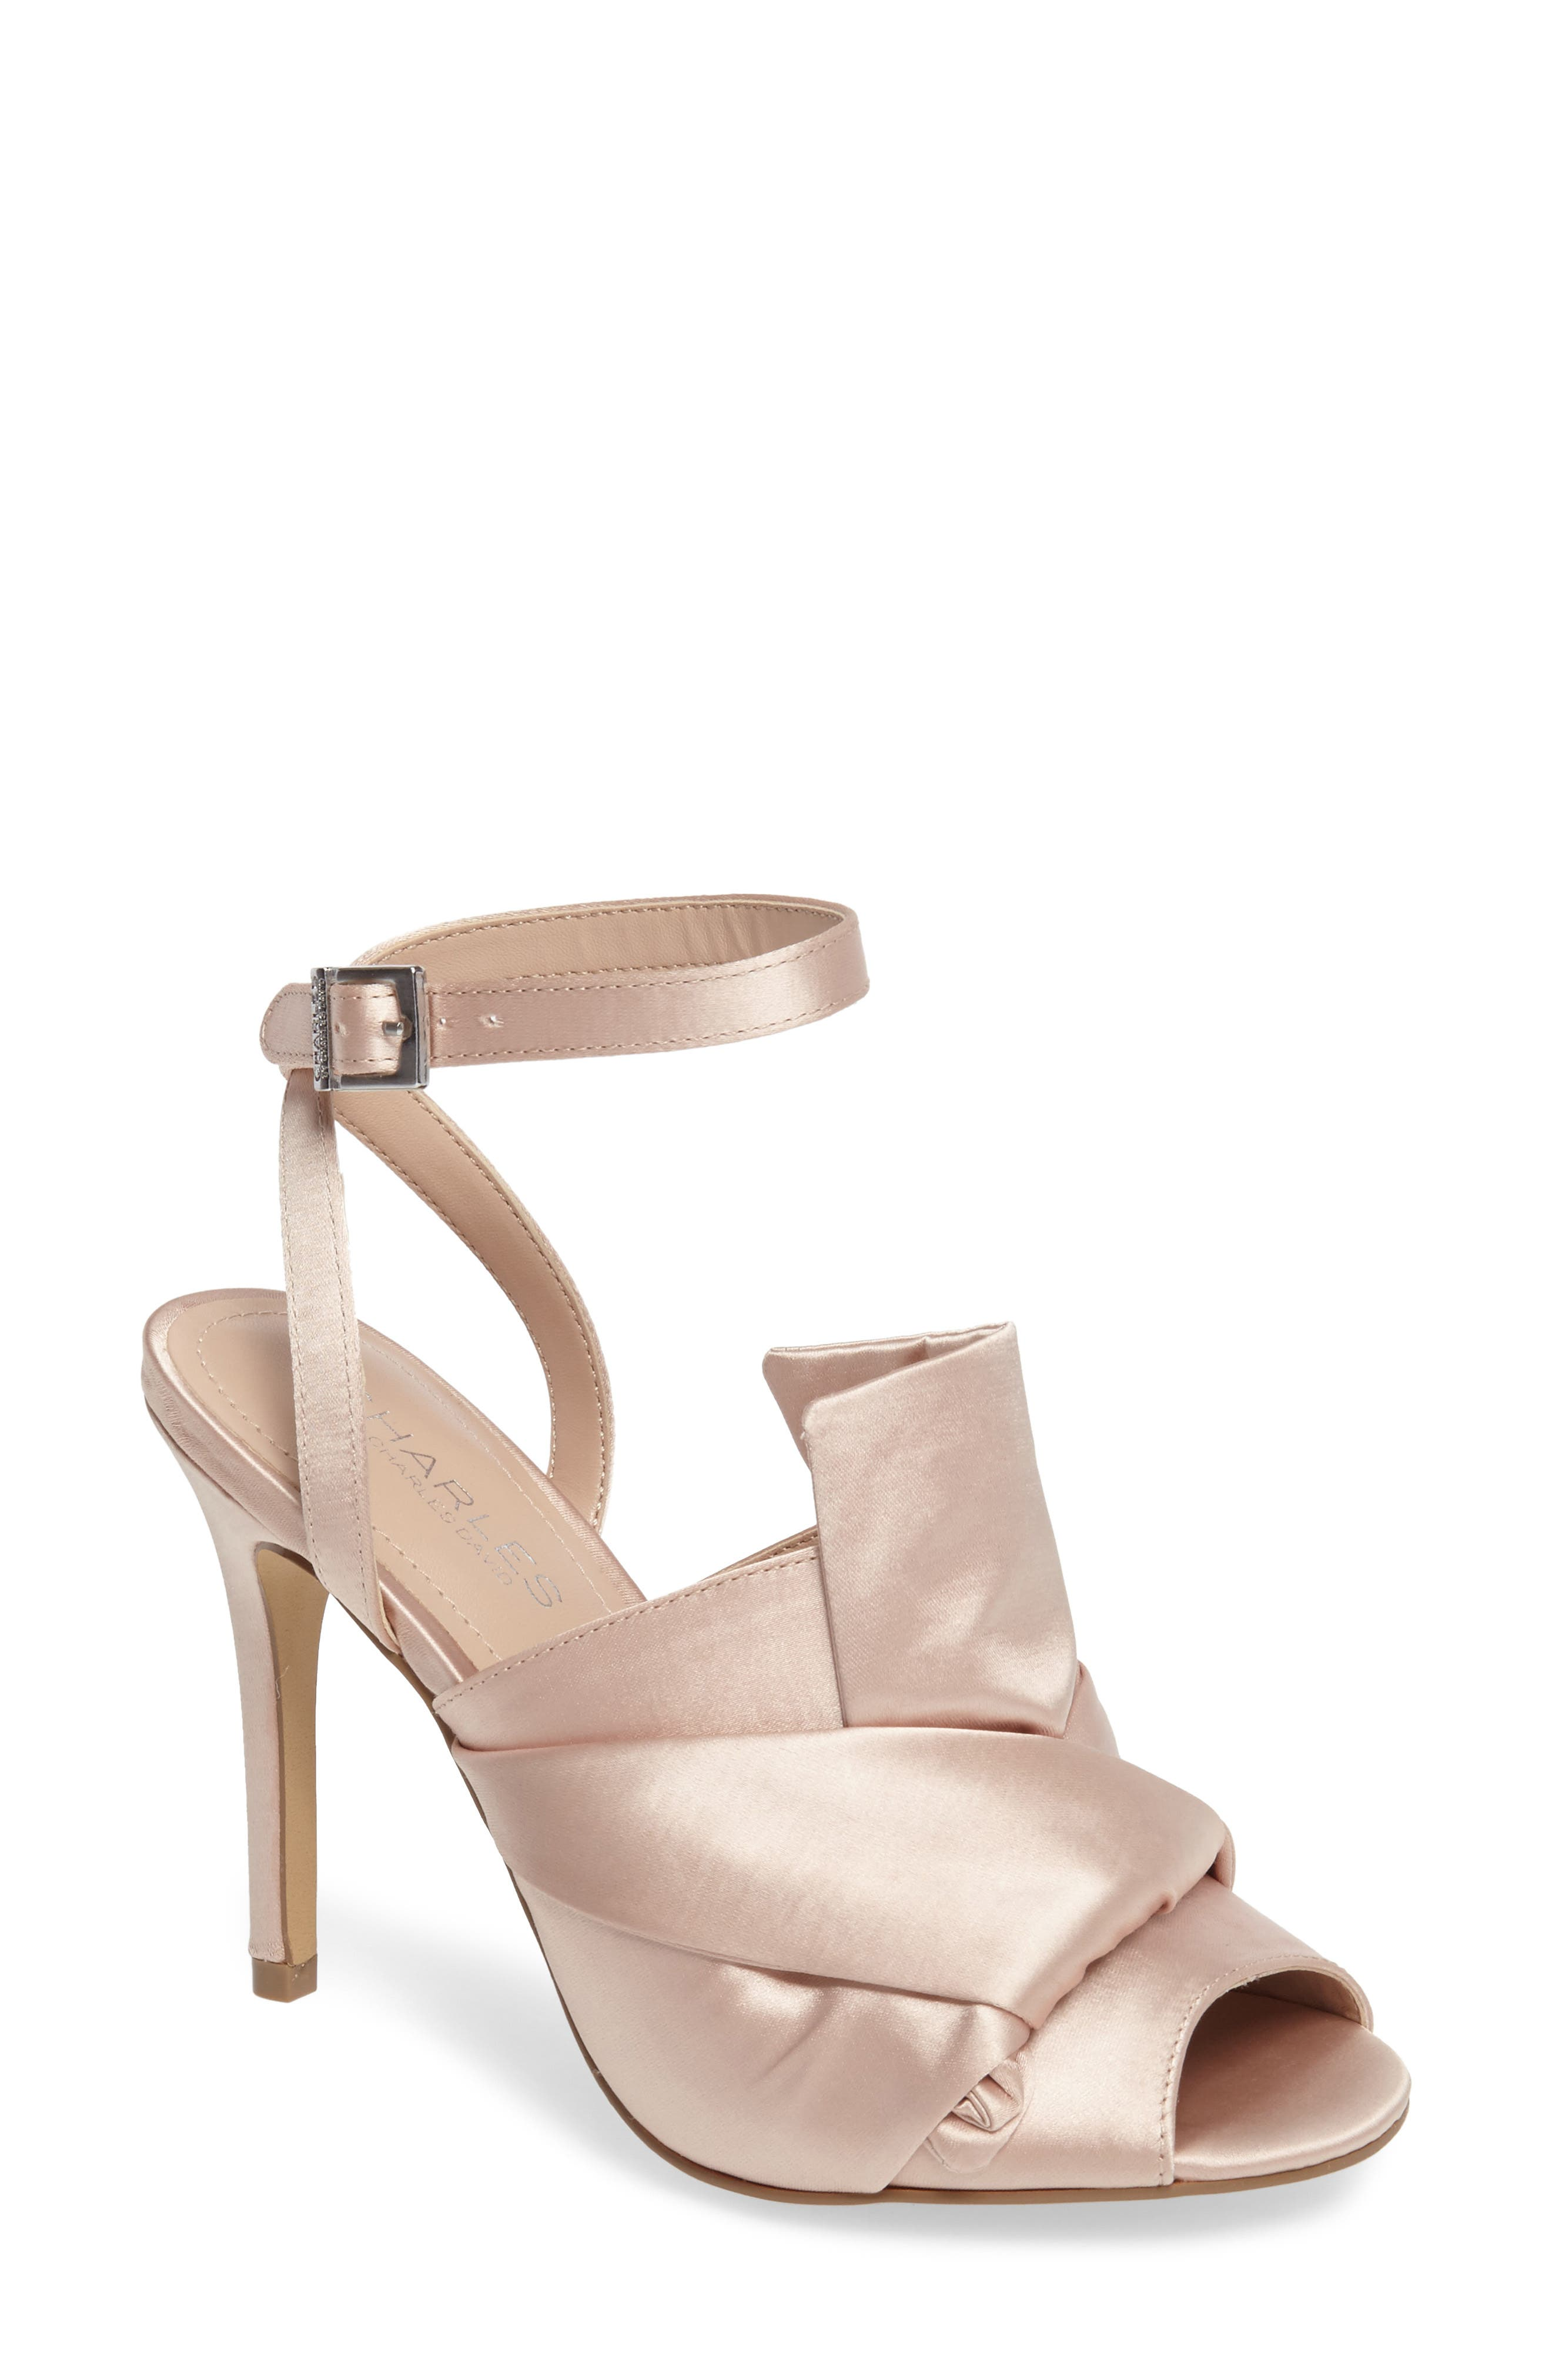 Main Image - Charles by Charles David Rachel Ankle Strap Sandal (Women)